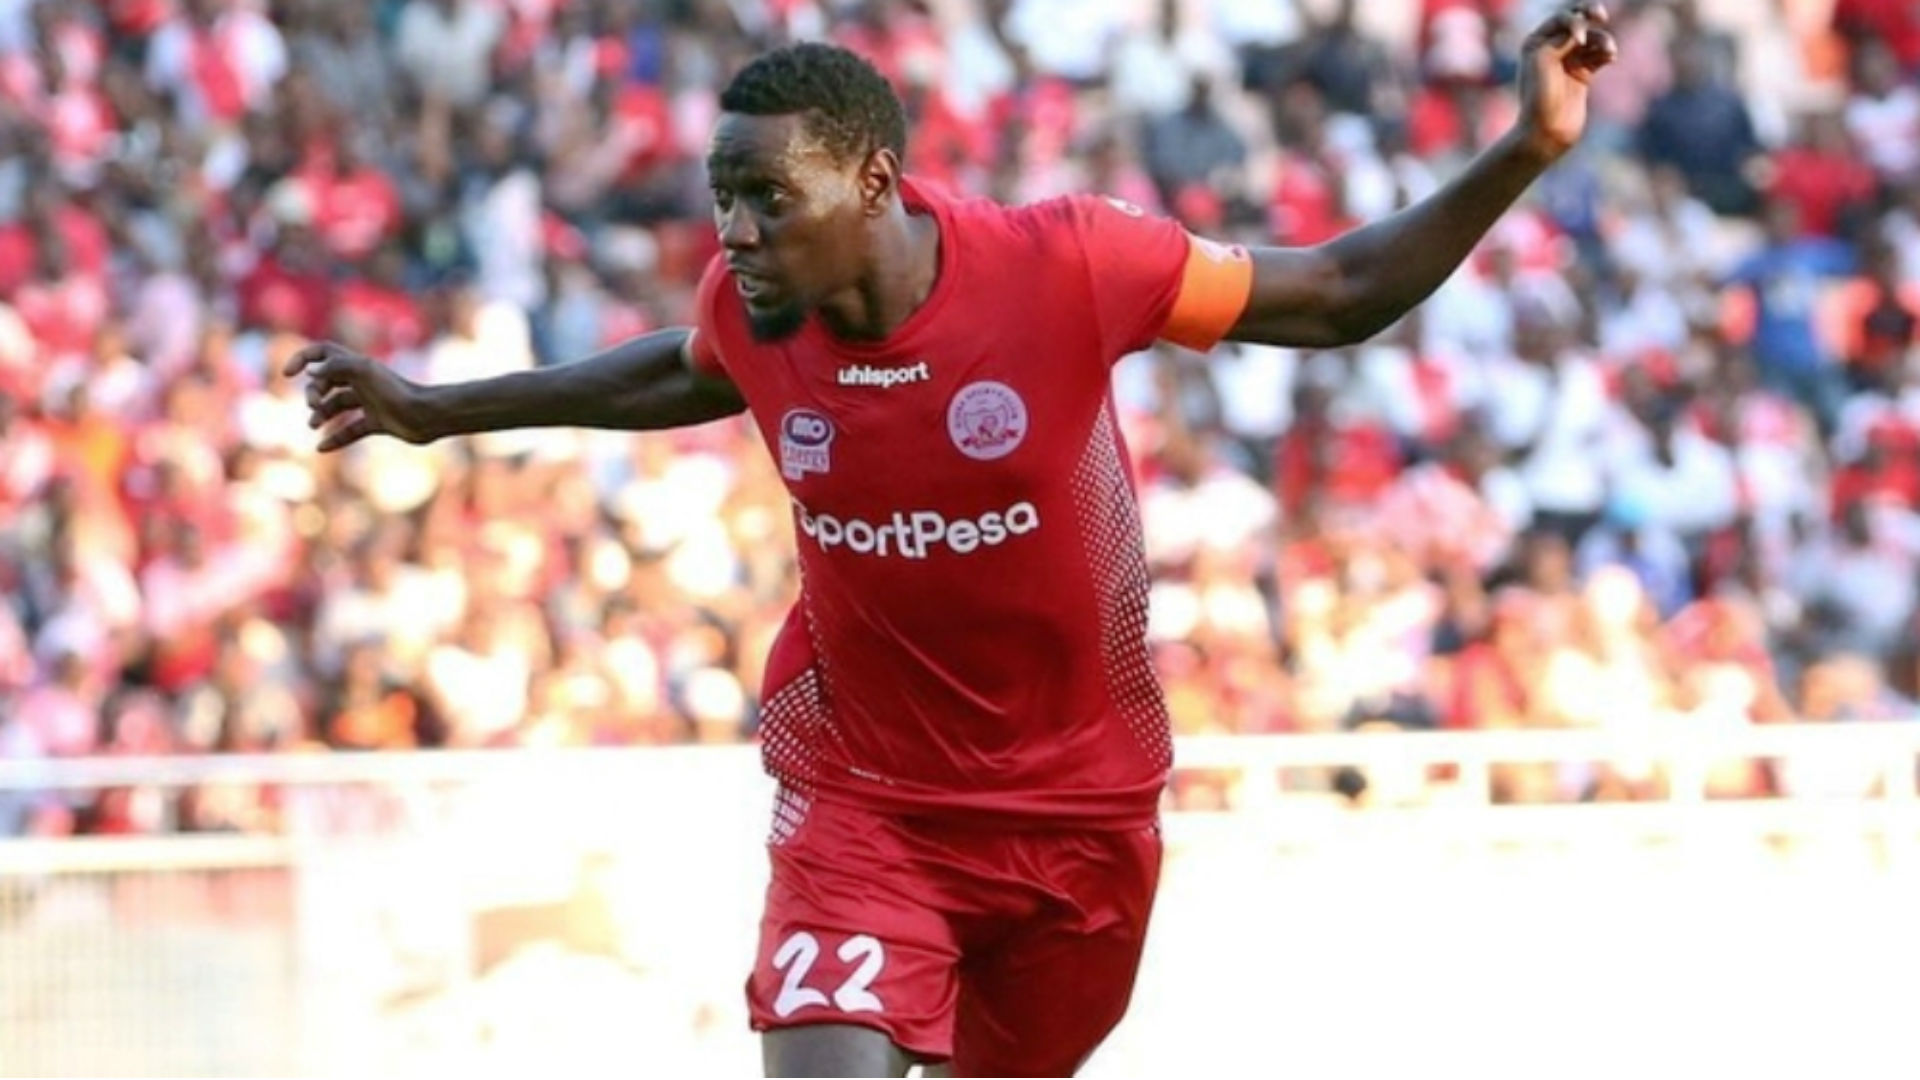 Bocco sees hopes in Simba's 6-point mission